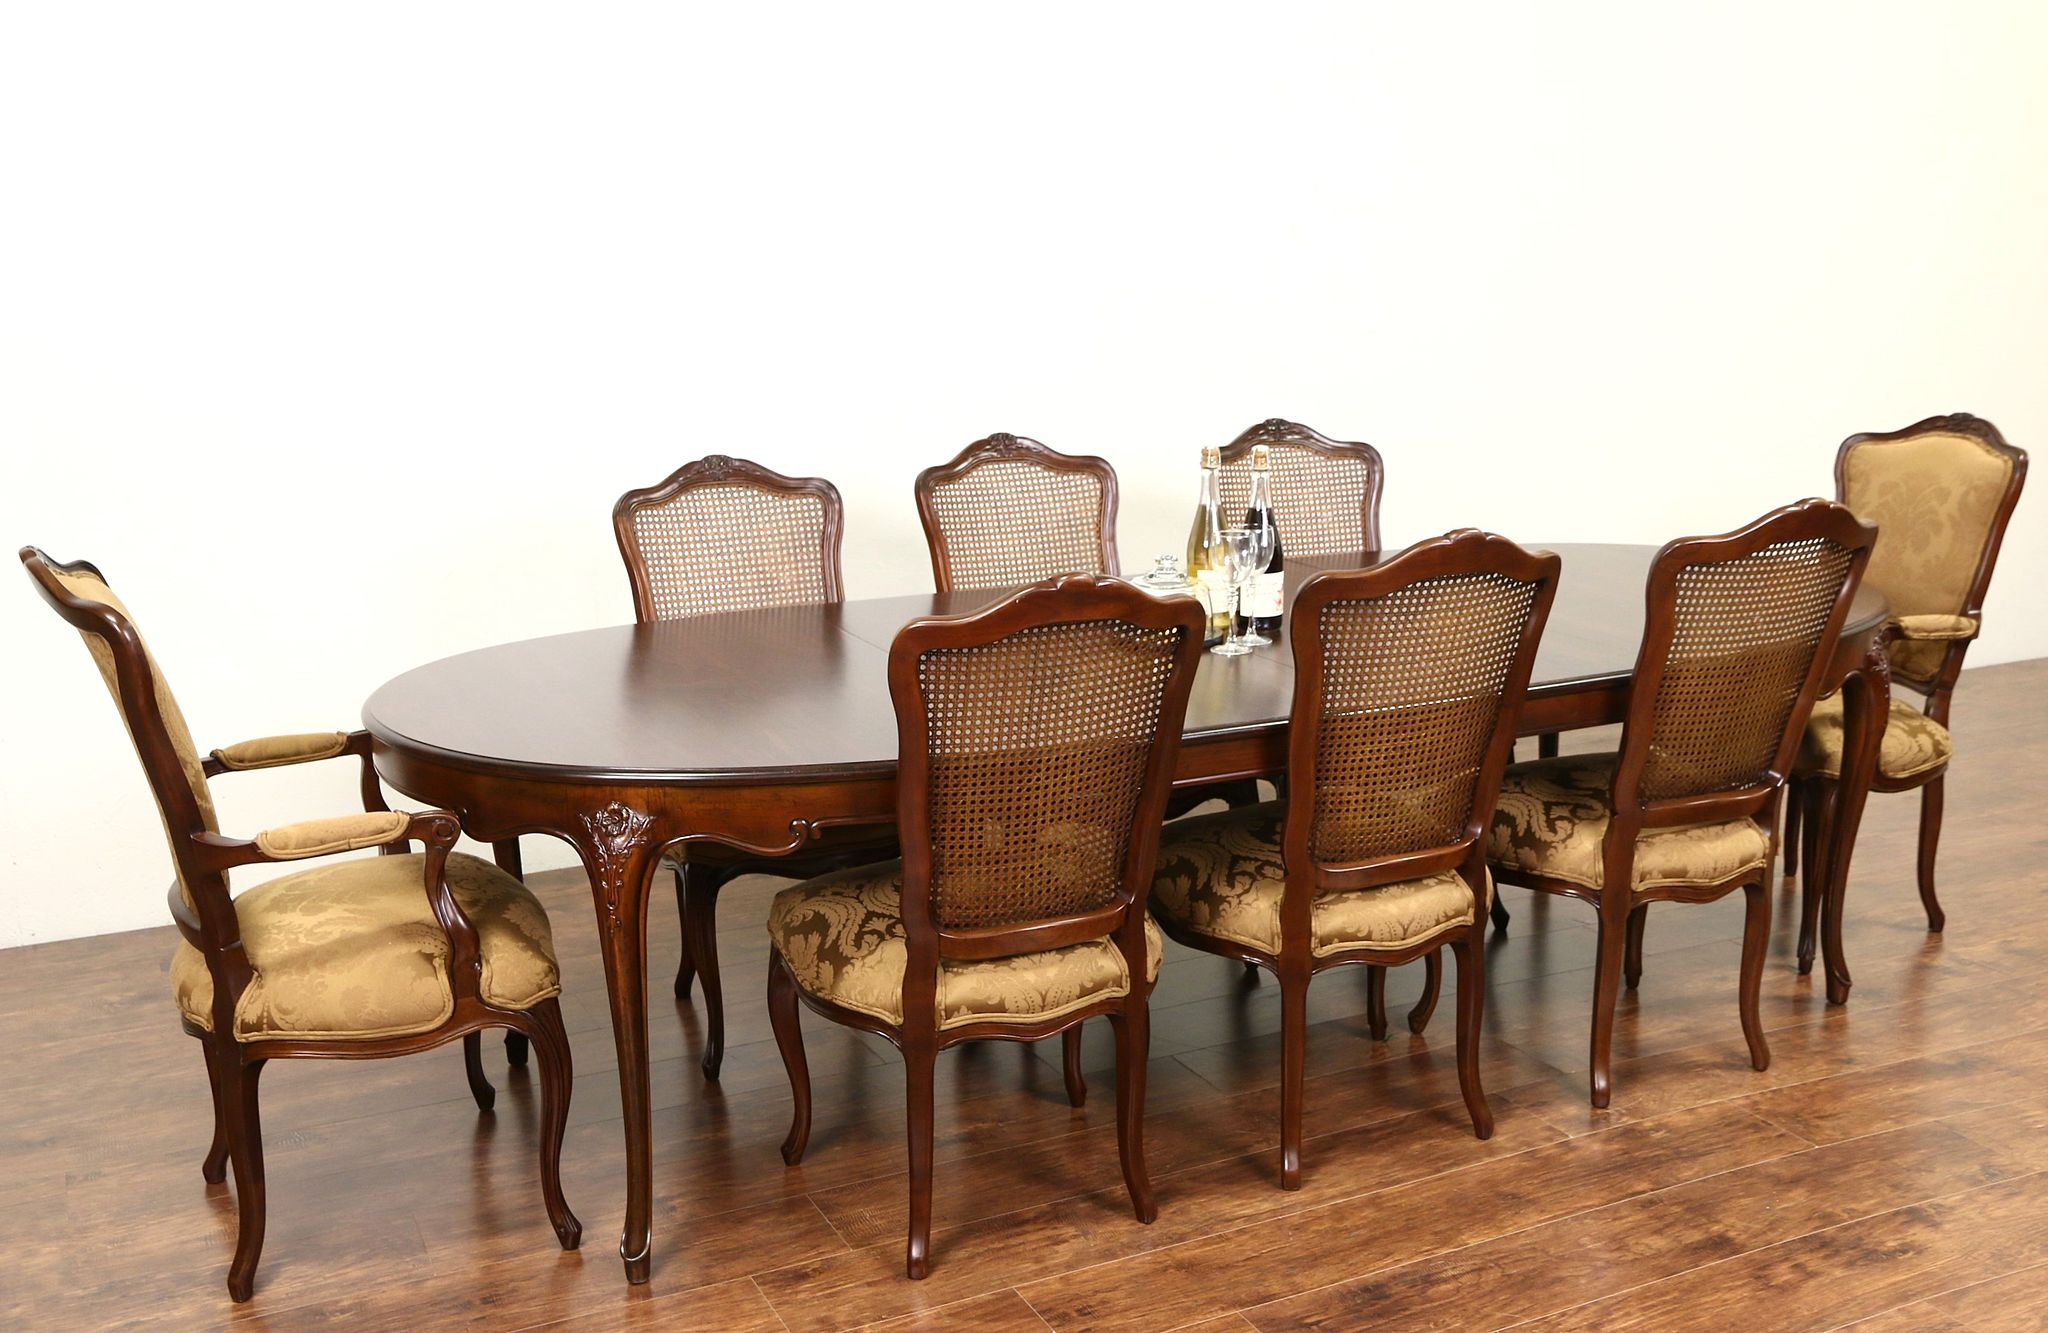 Baker Cherry Country French Dining Set, Table, 2 Leaves, 8 Chairs New  Upholstery